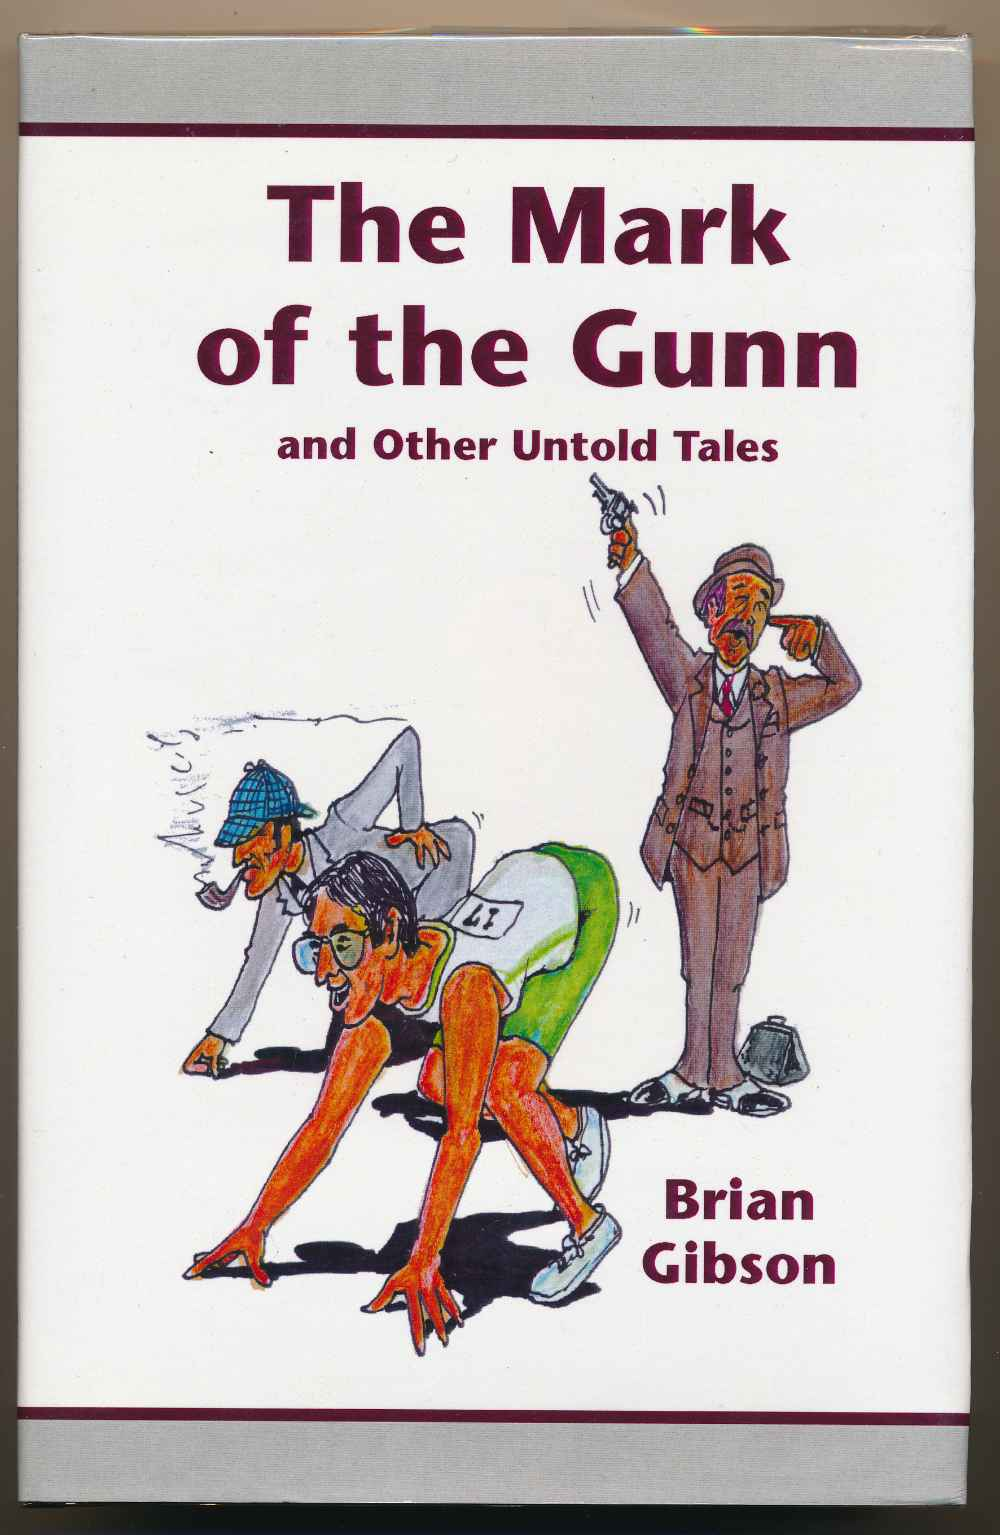 The mark of the Gunn, and other untold tales